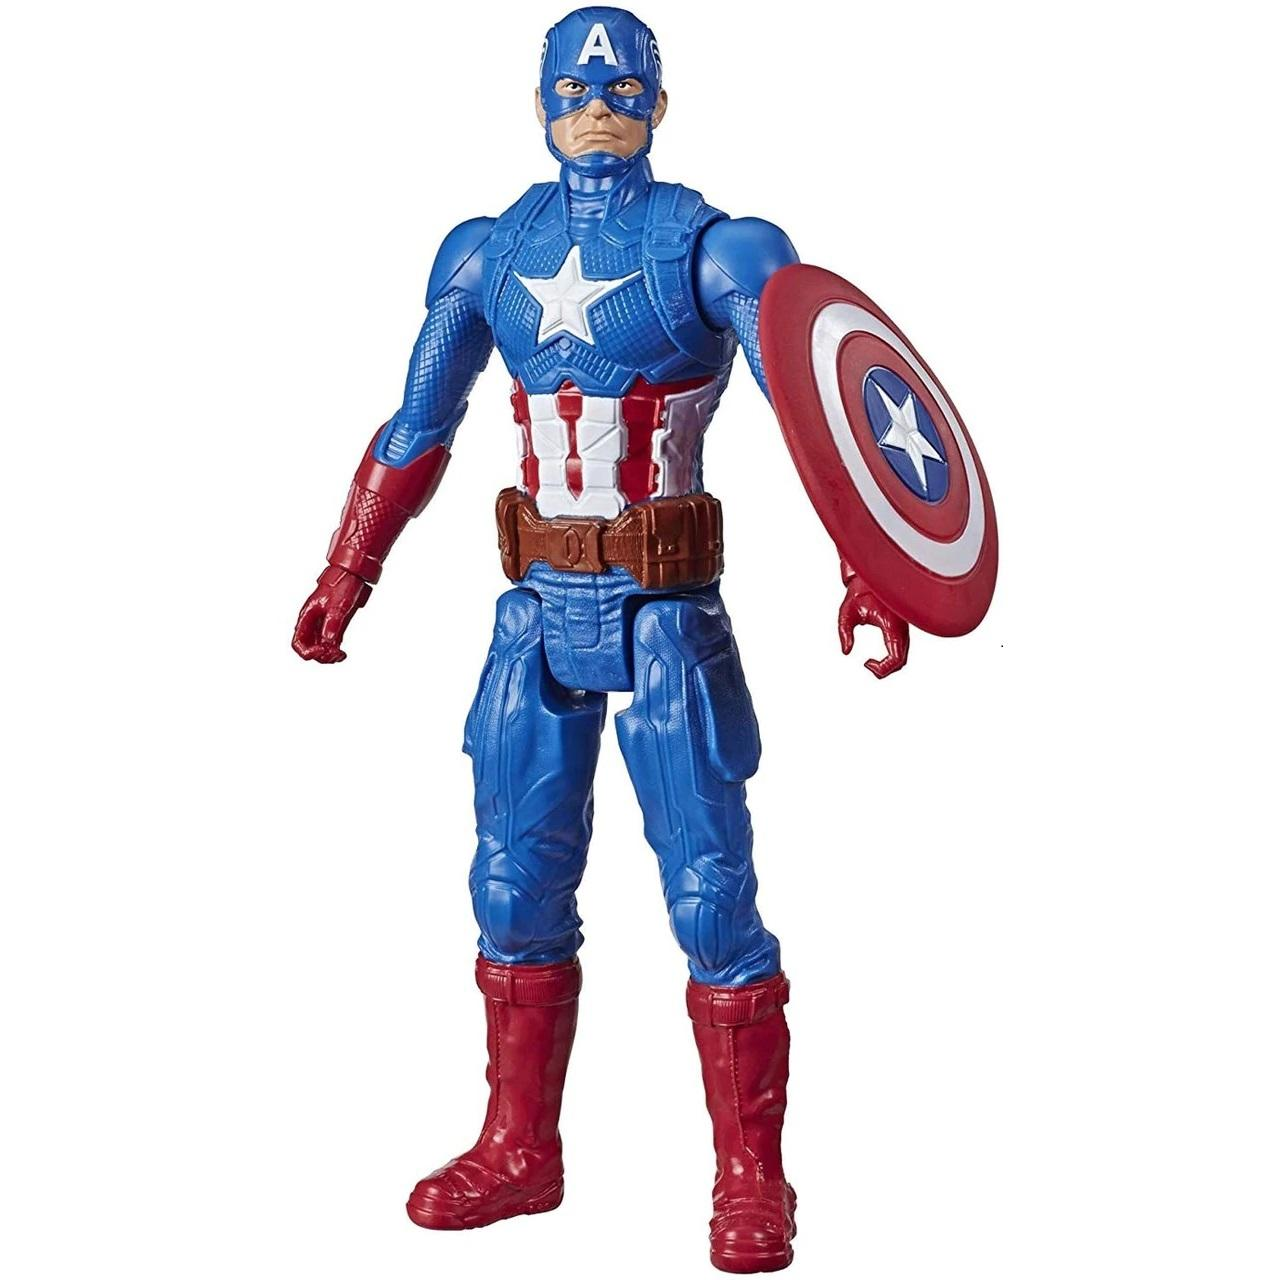 Marvel Avengers Titan Hero Captain America1